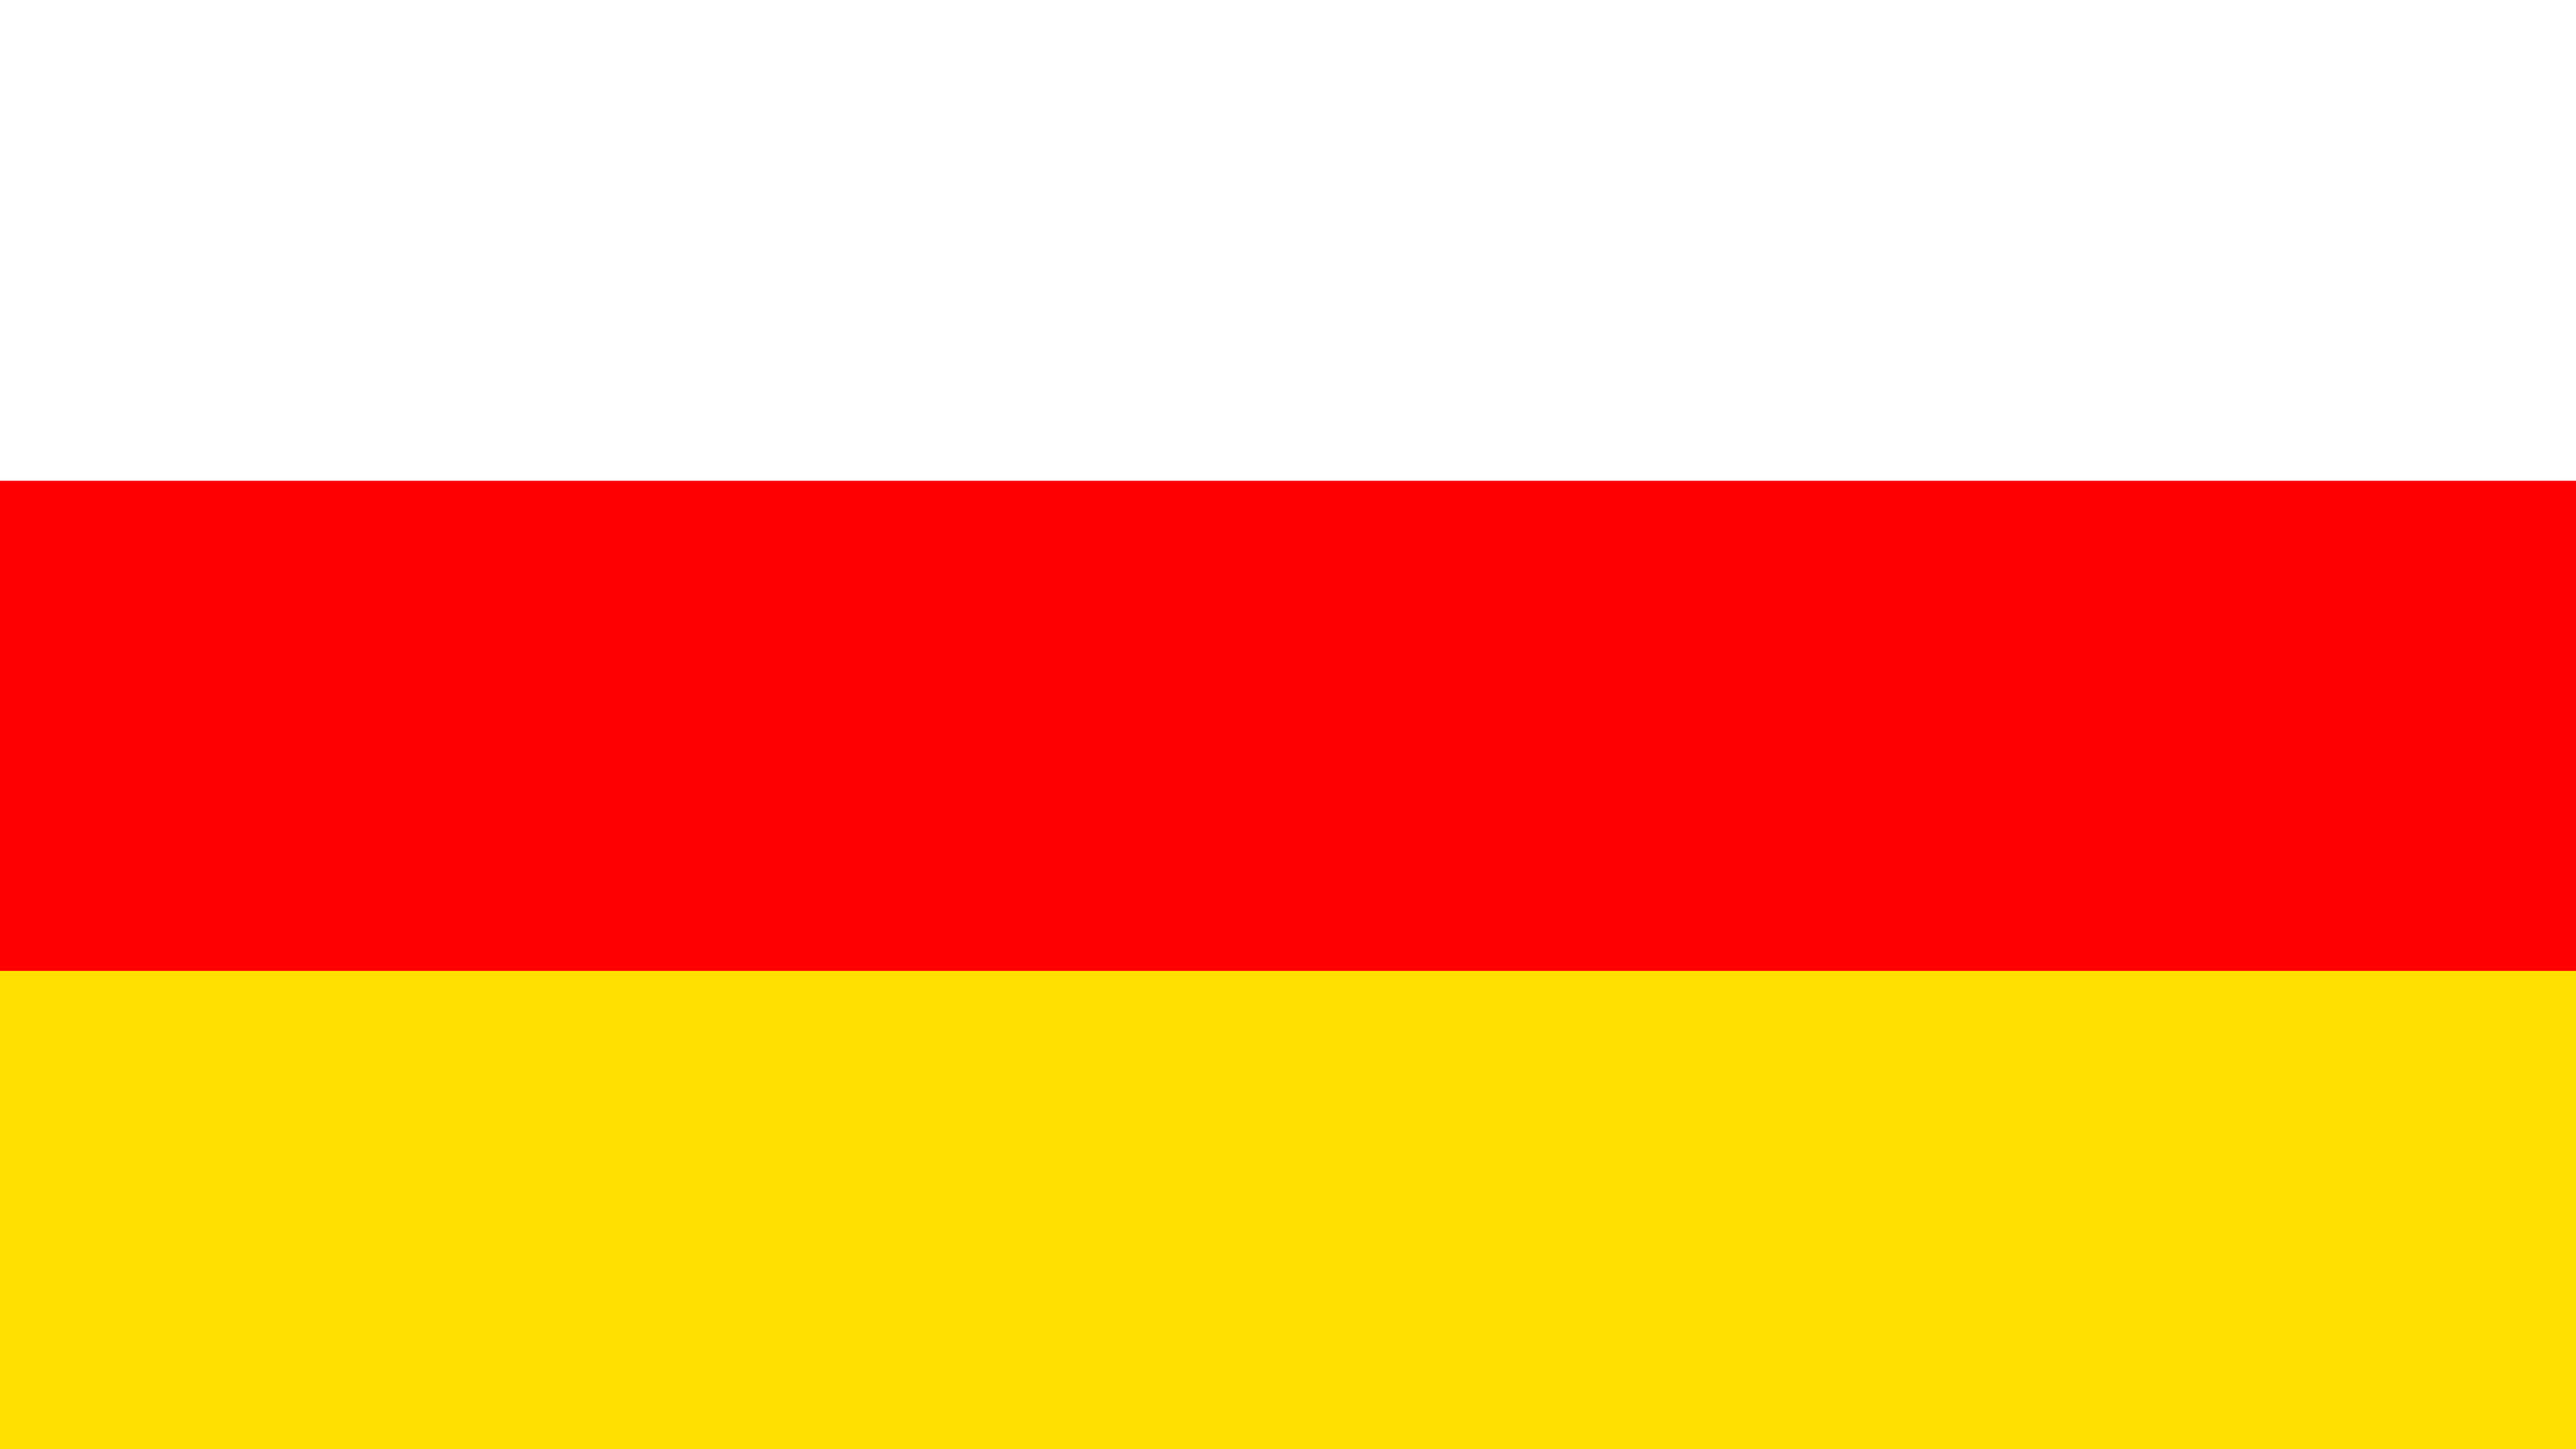 south ossetia flag uhd 4k wallpaper